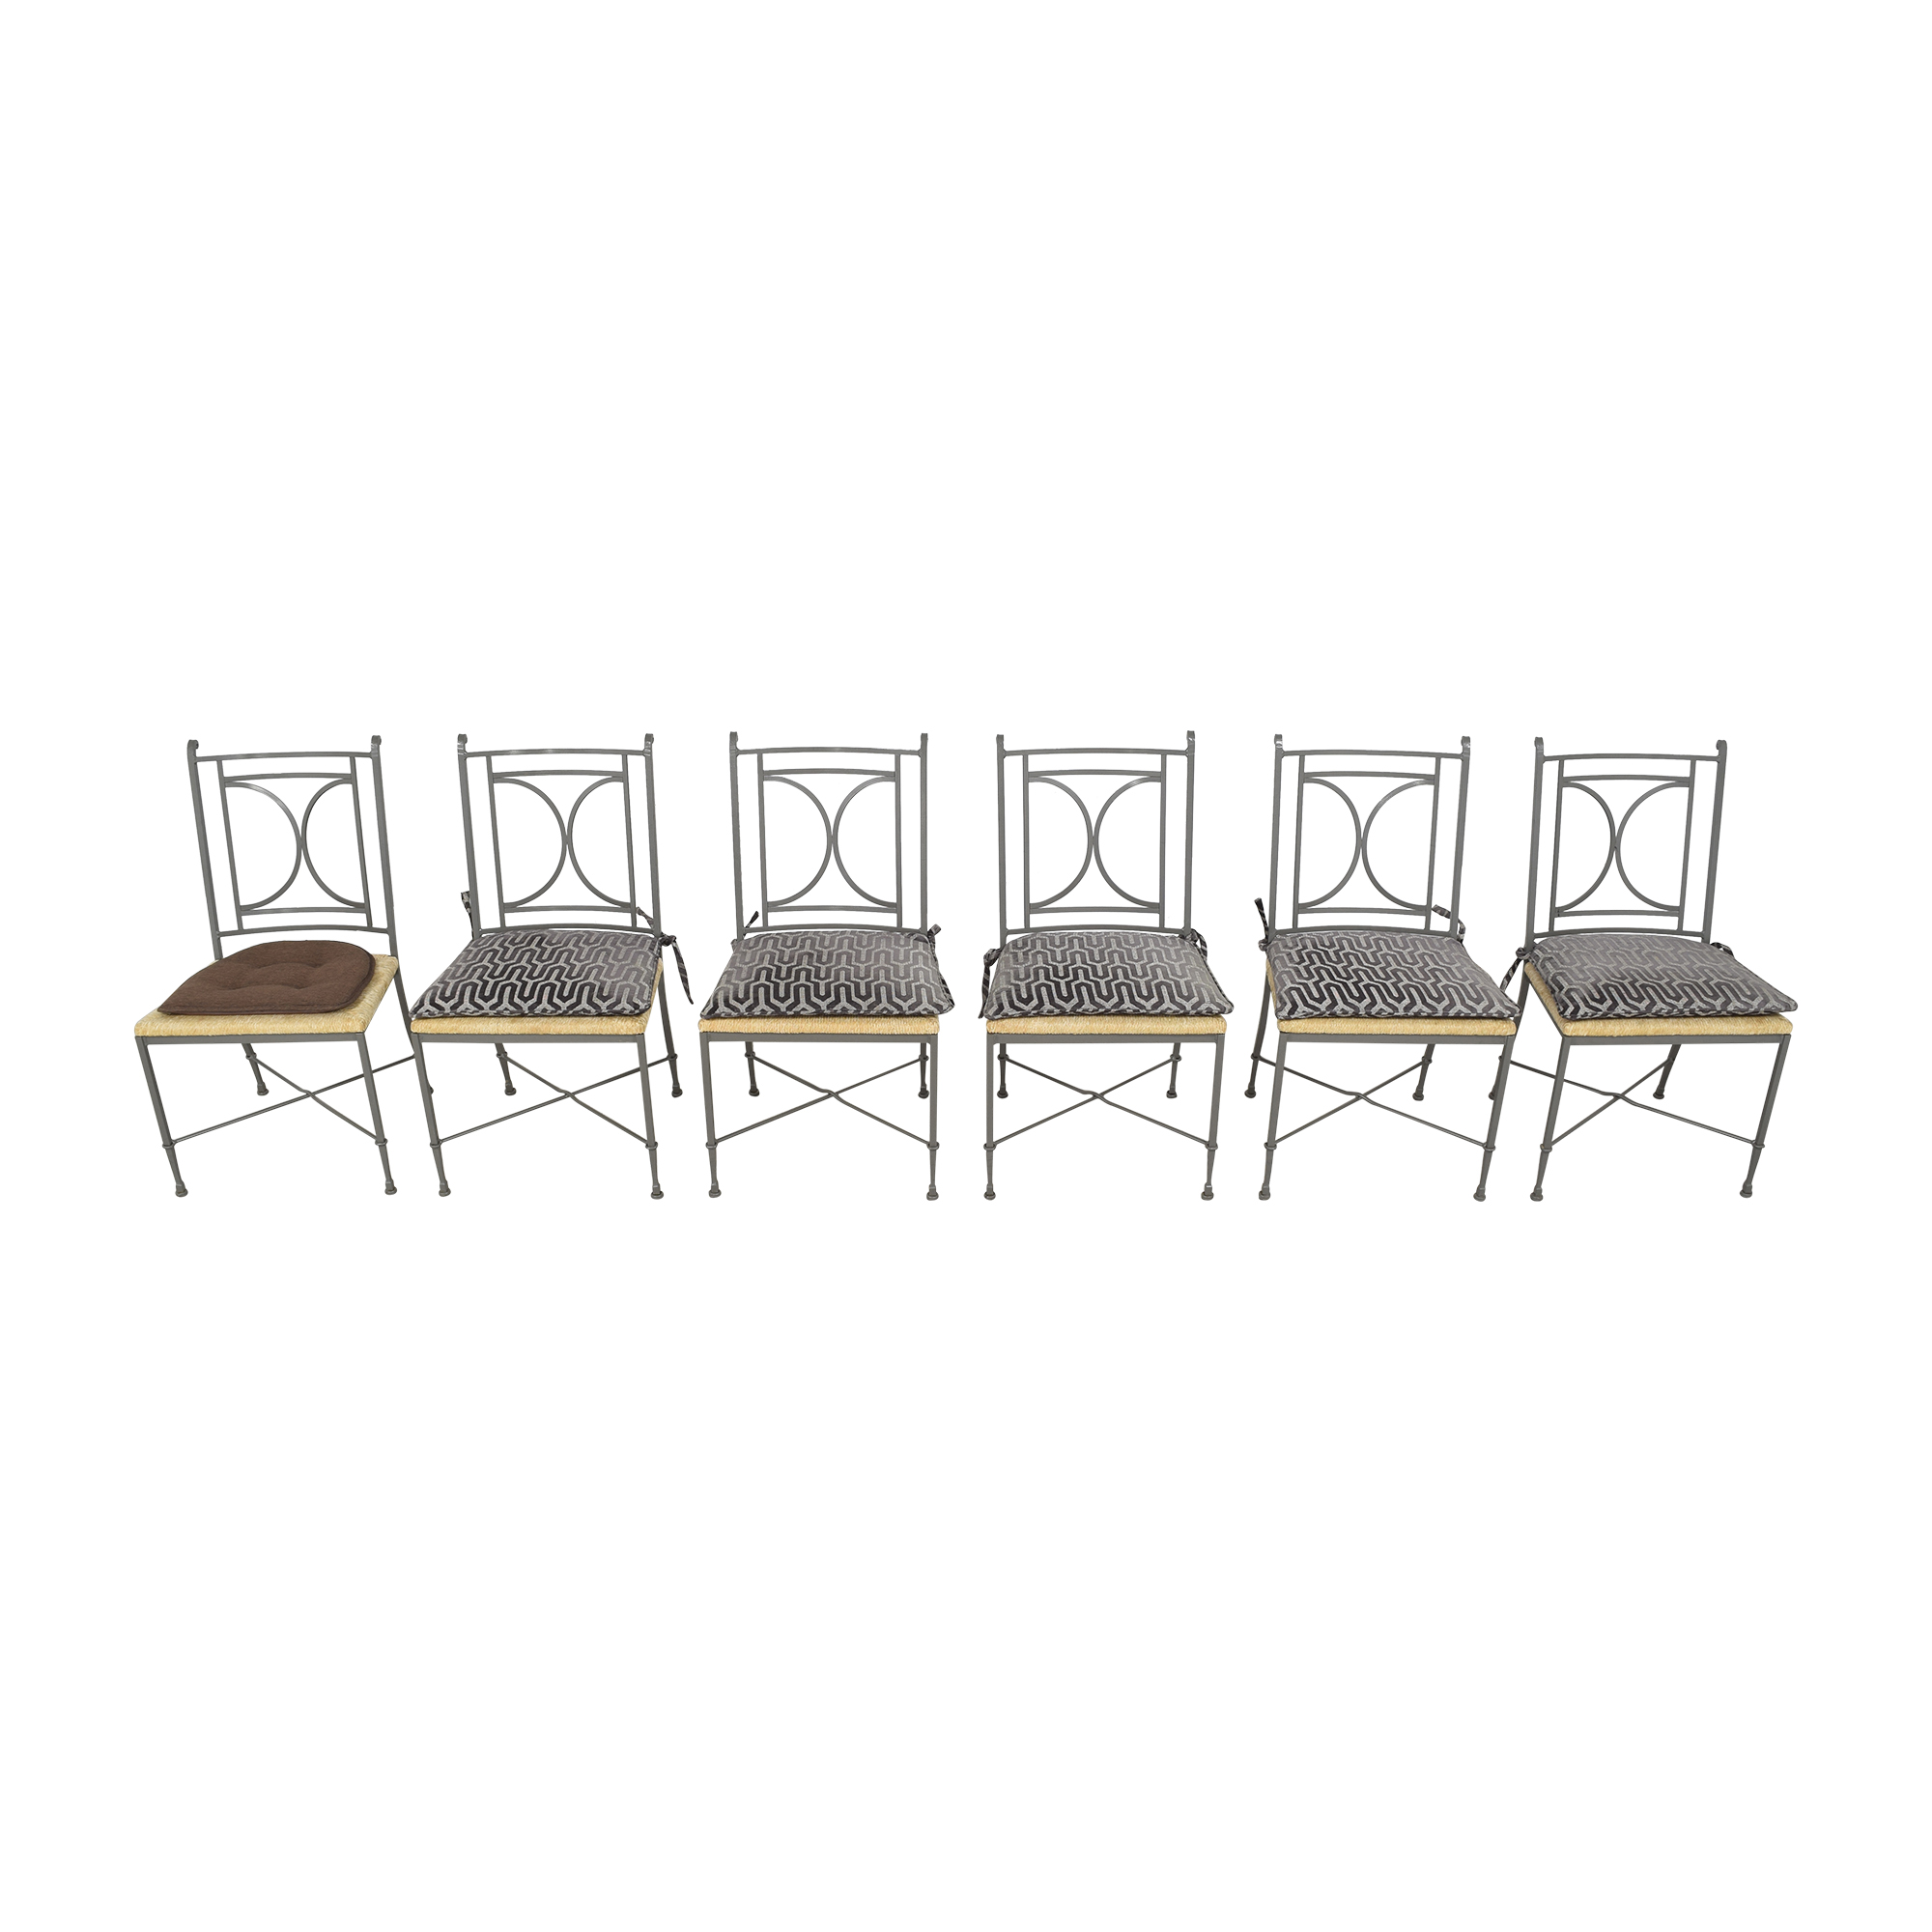 Charleston Forge Charleston Forge Woven Seat Dining Chairs with Cushions price